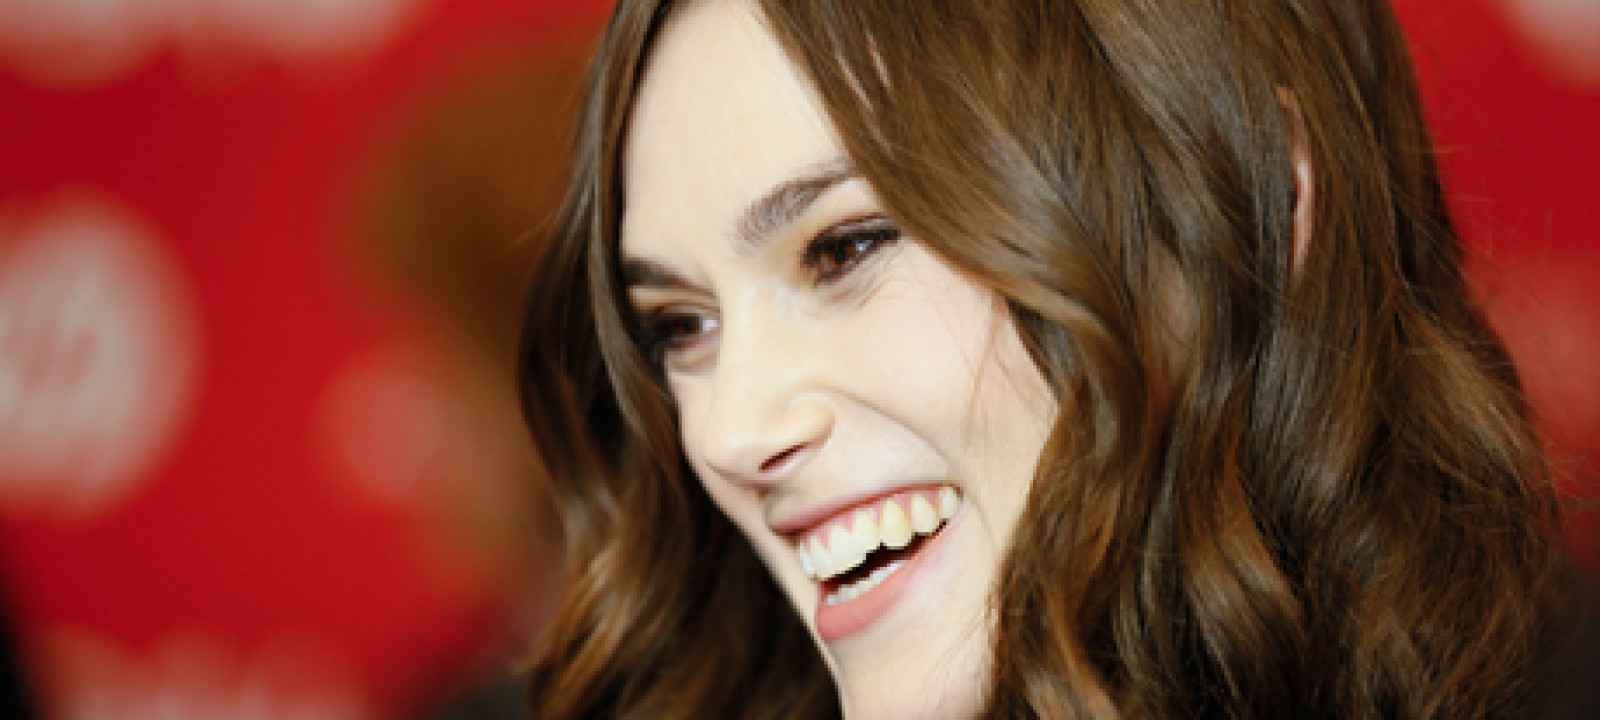 460x300_keiraknightley_laggies